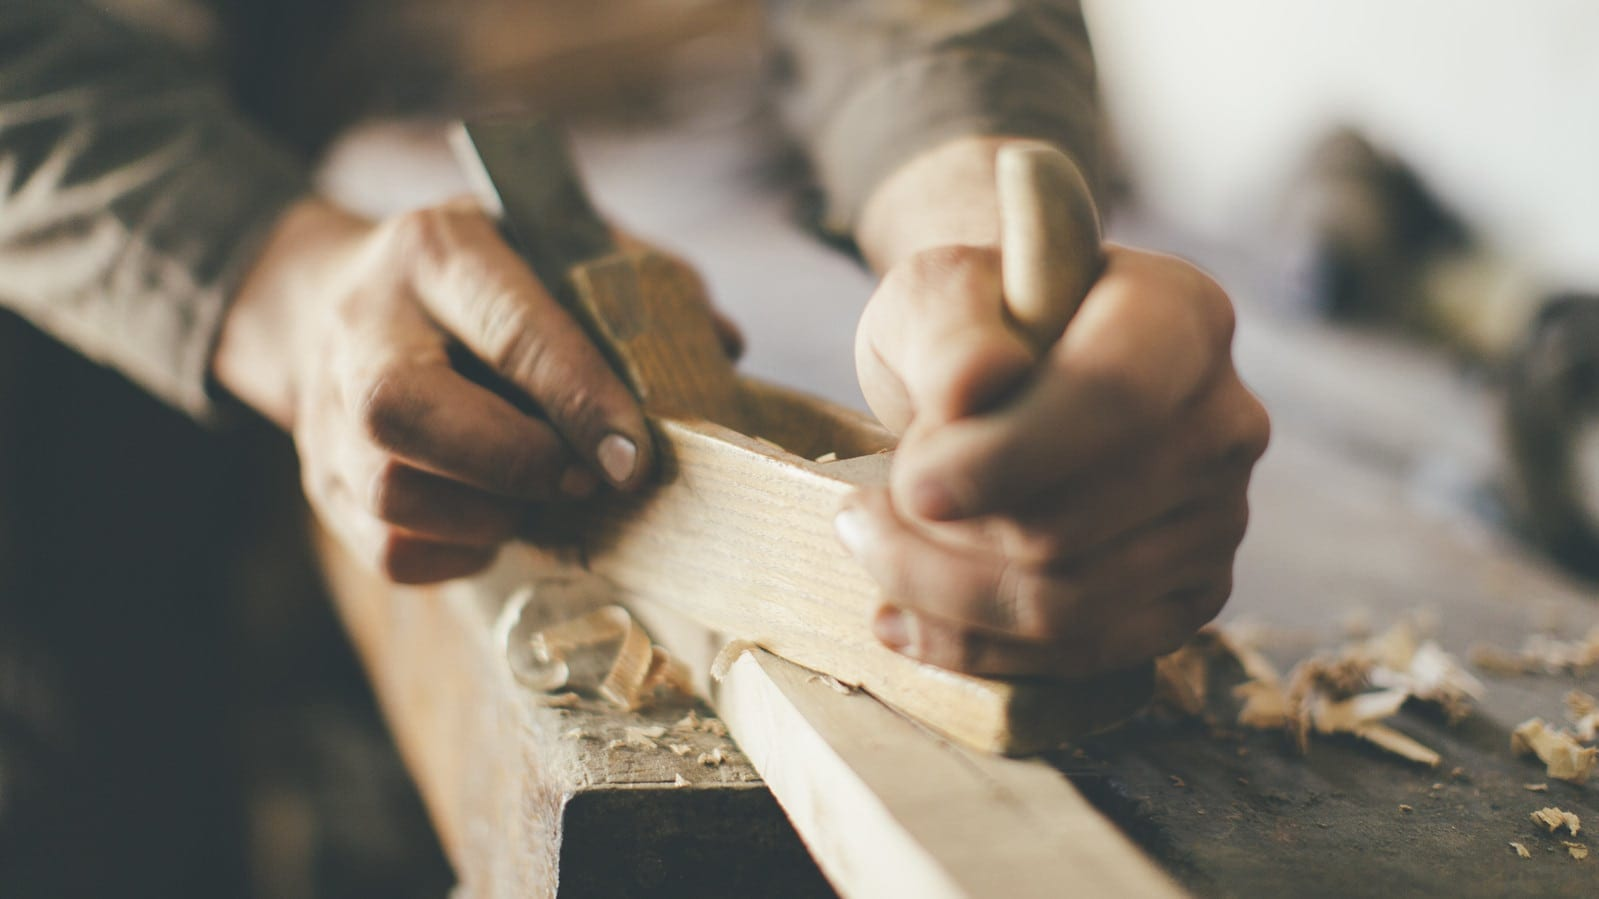 Man Cutting Wood Stock Photo